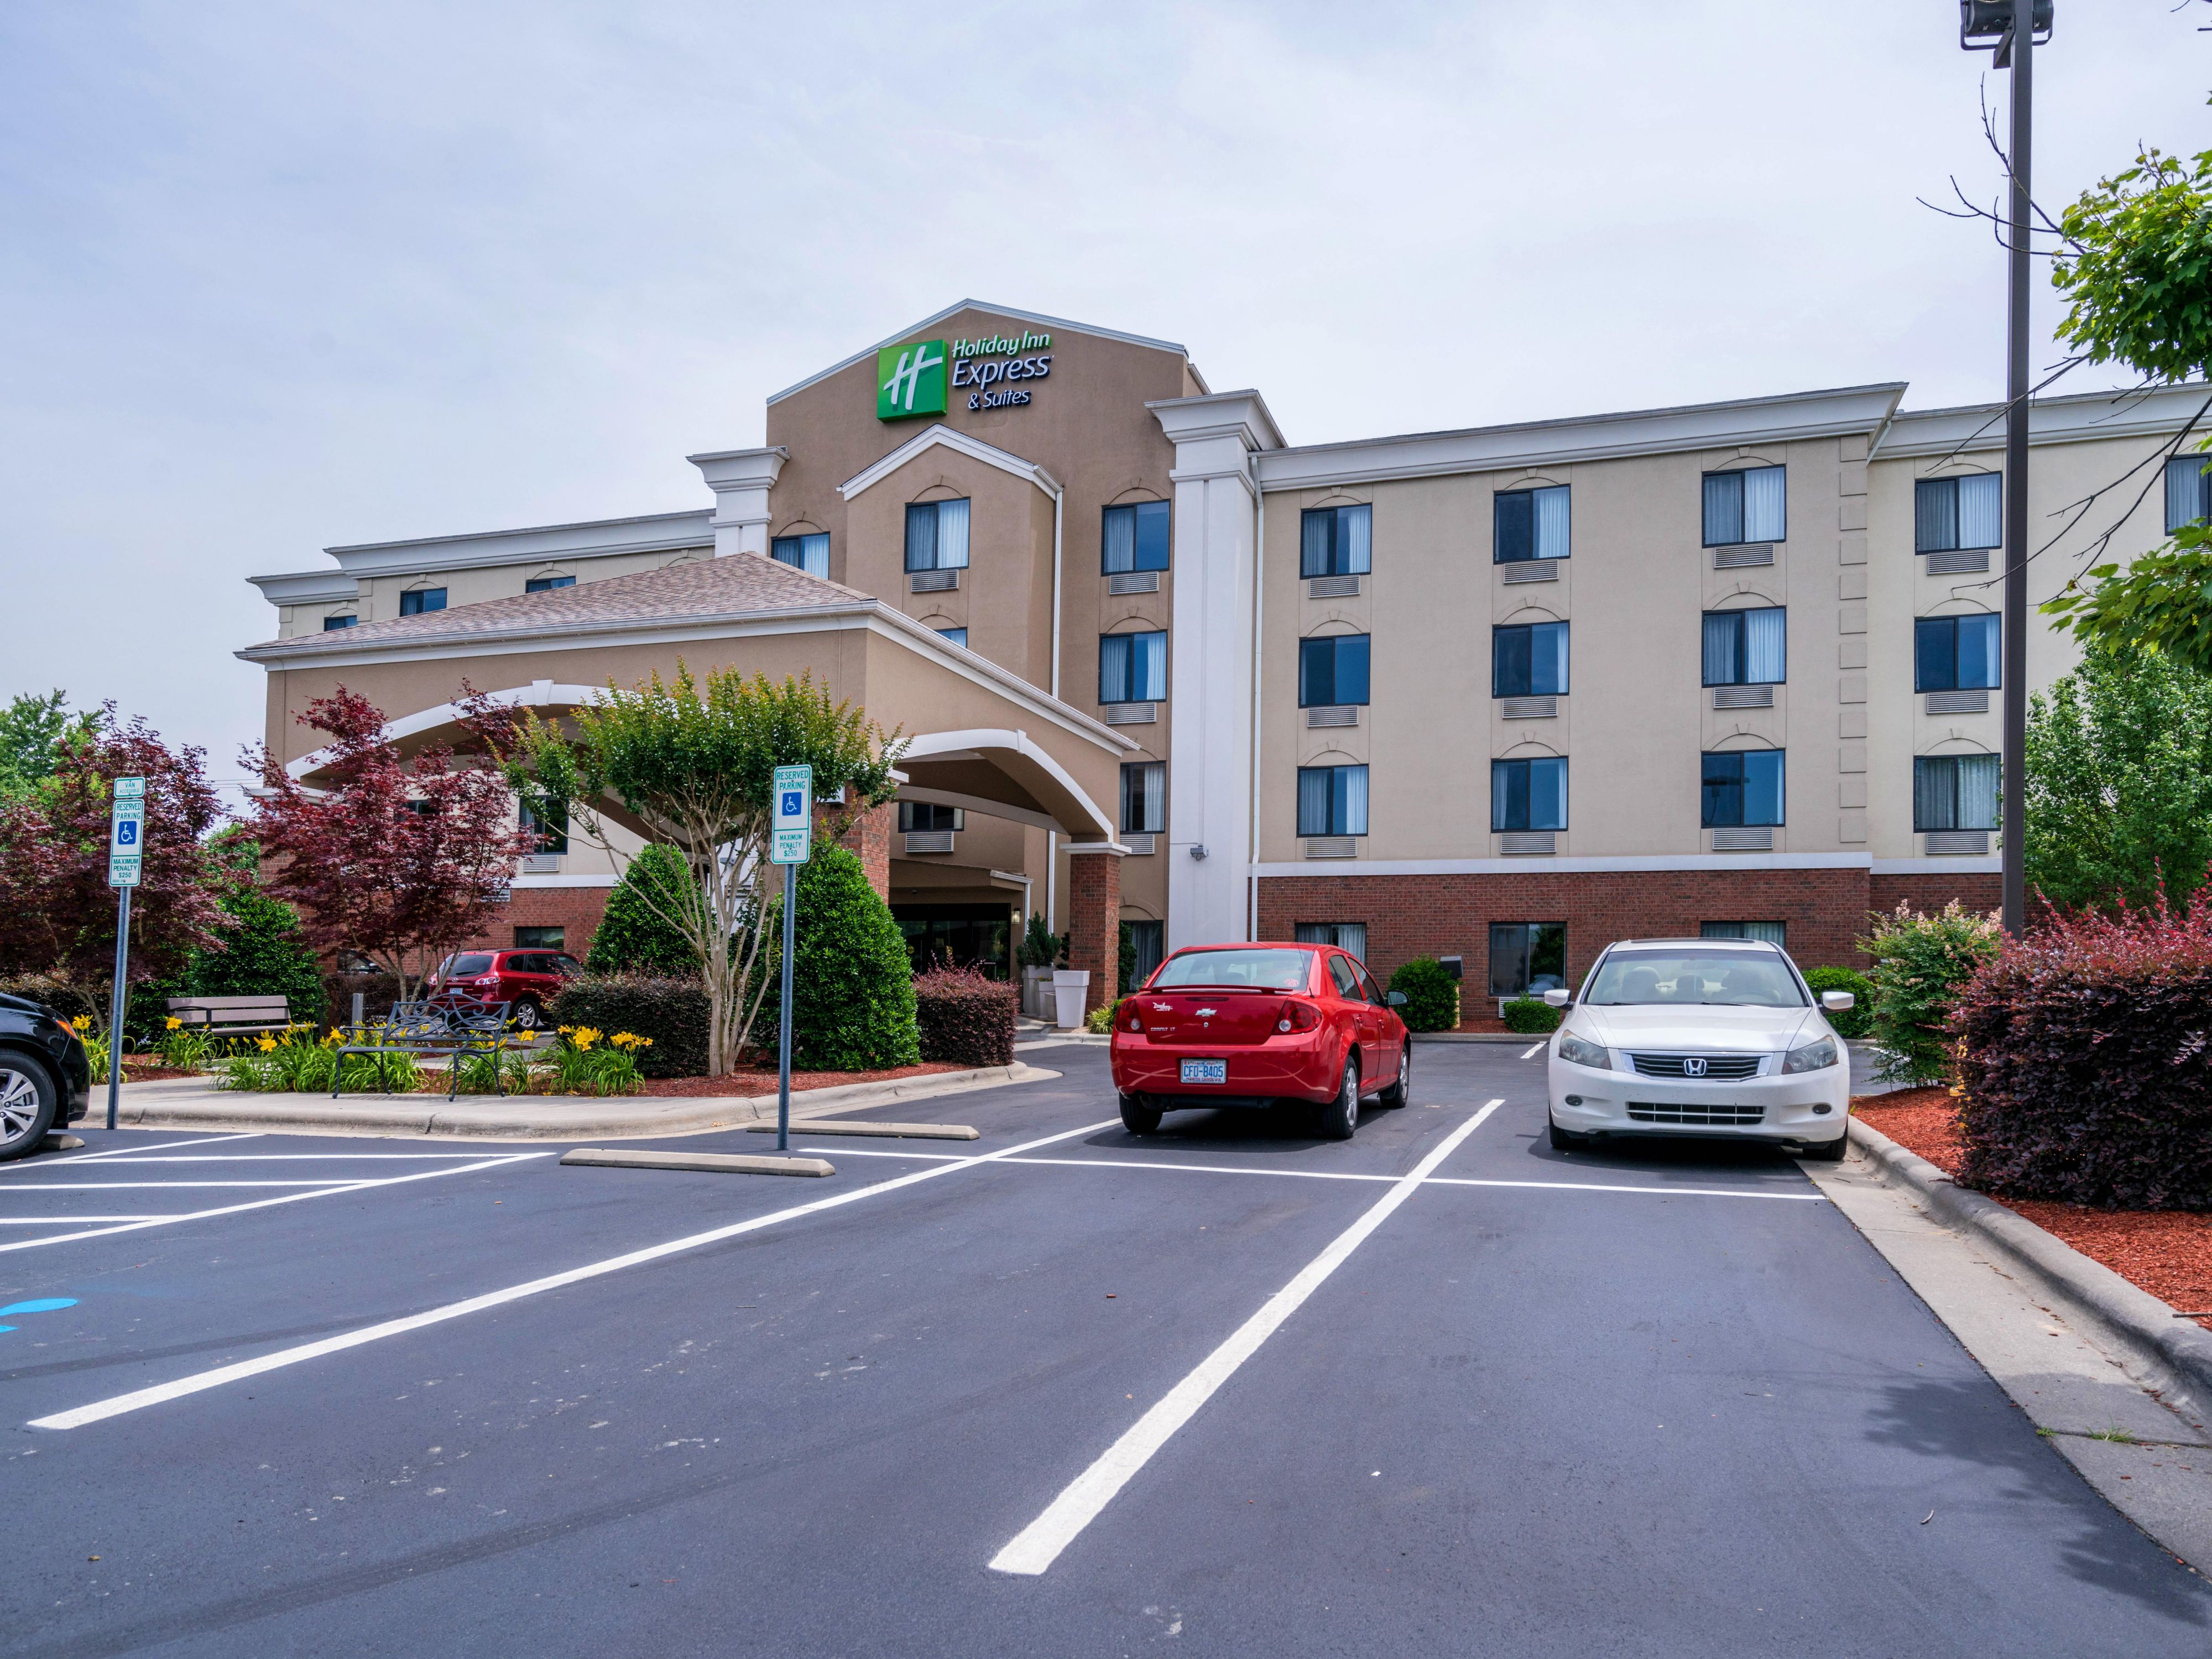 Things To Do In Roanoke Rapids Near Holiday Inn Express